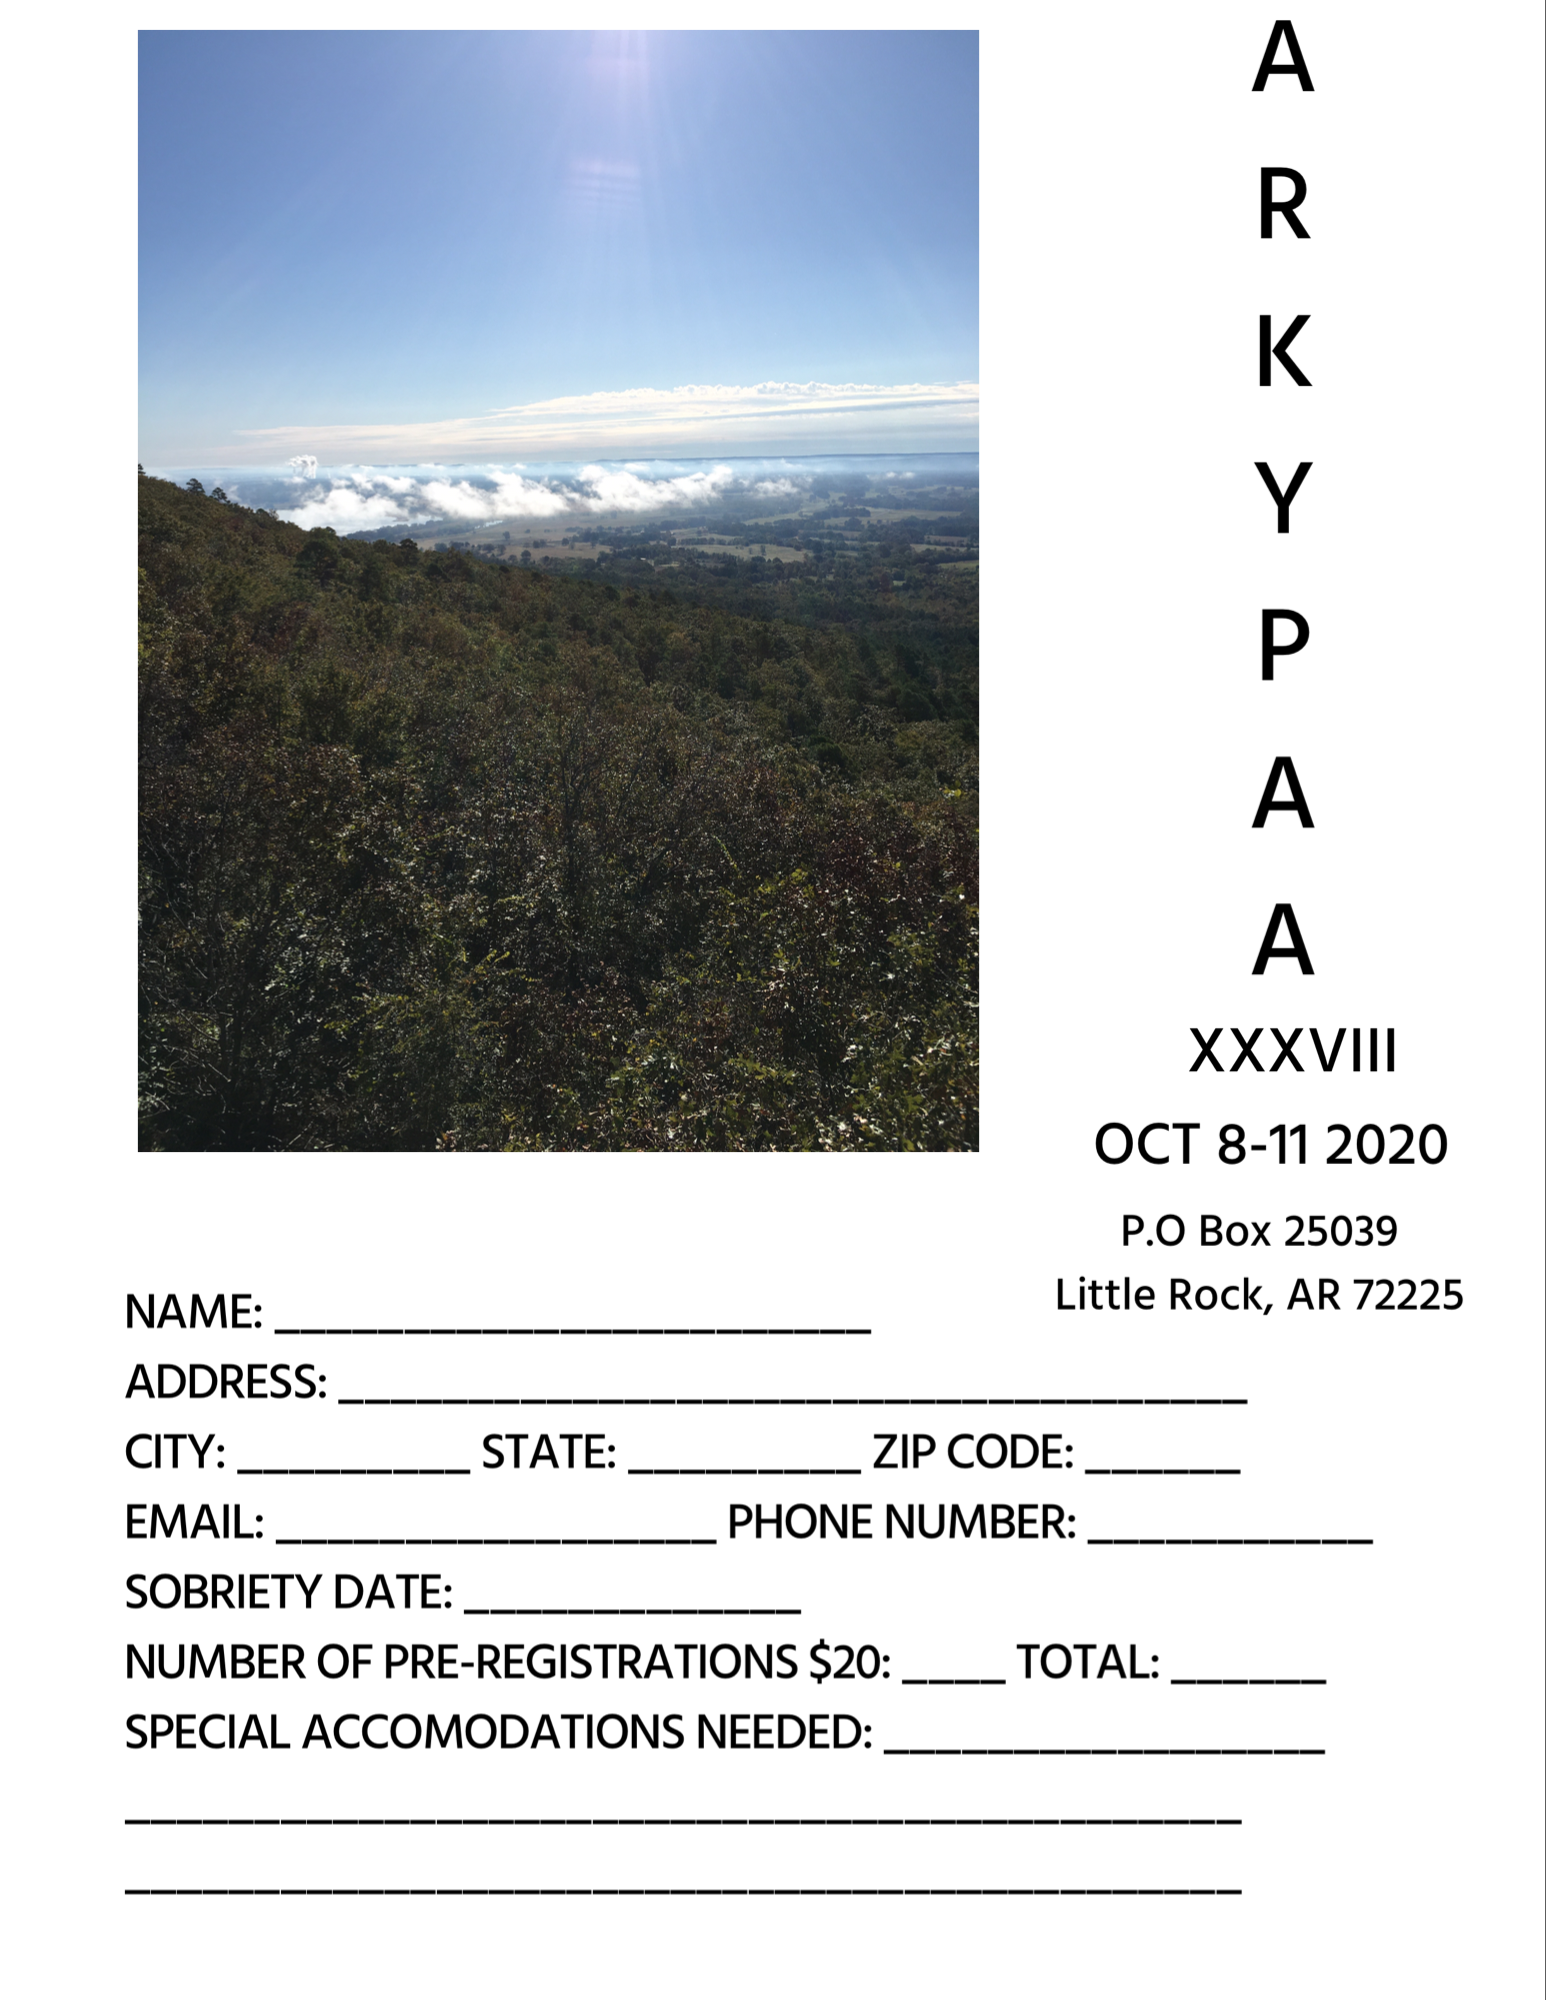 arkypaa 2020 pre-reg png.png